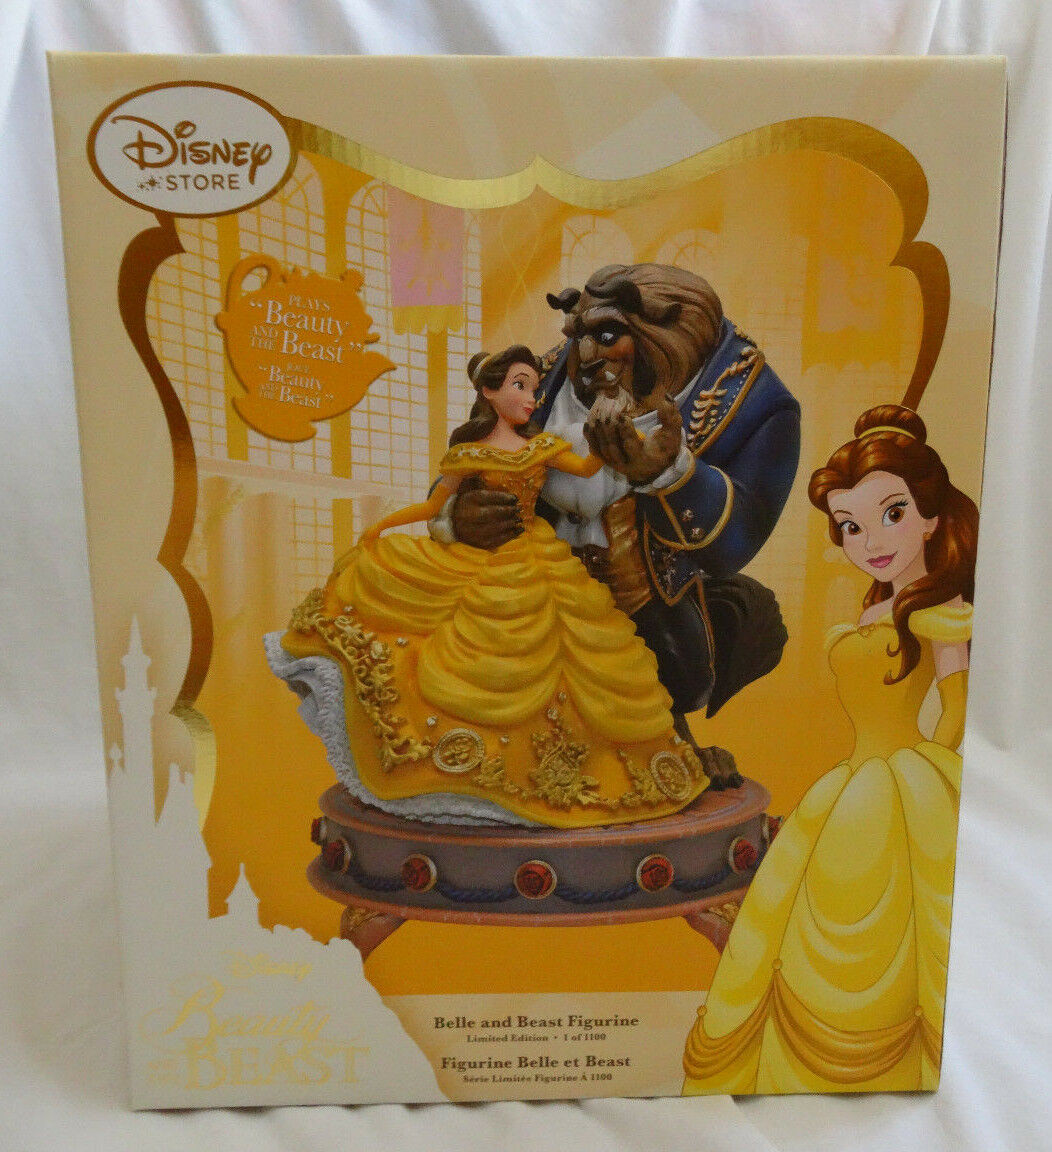 Disney Store Beauty And The Beast Limited Edition Figurine